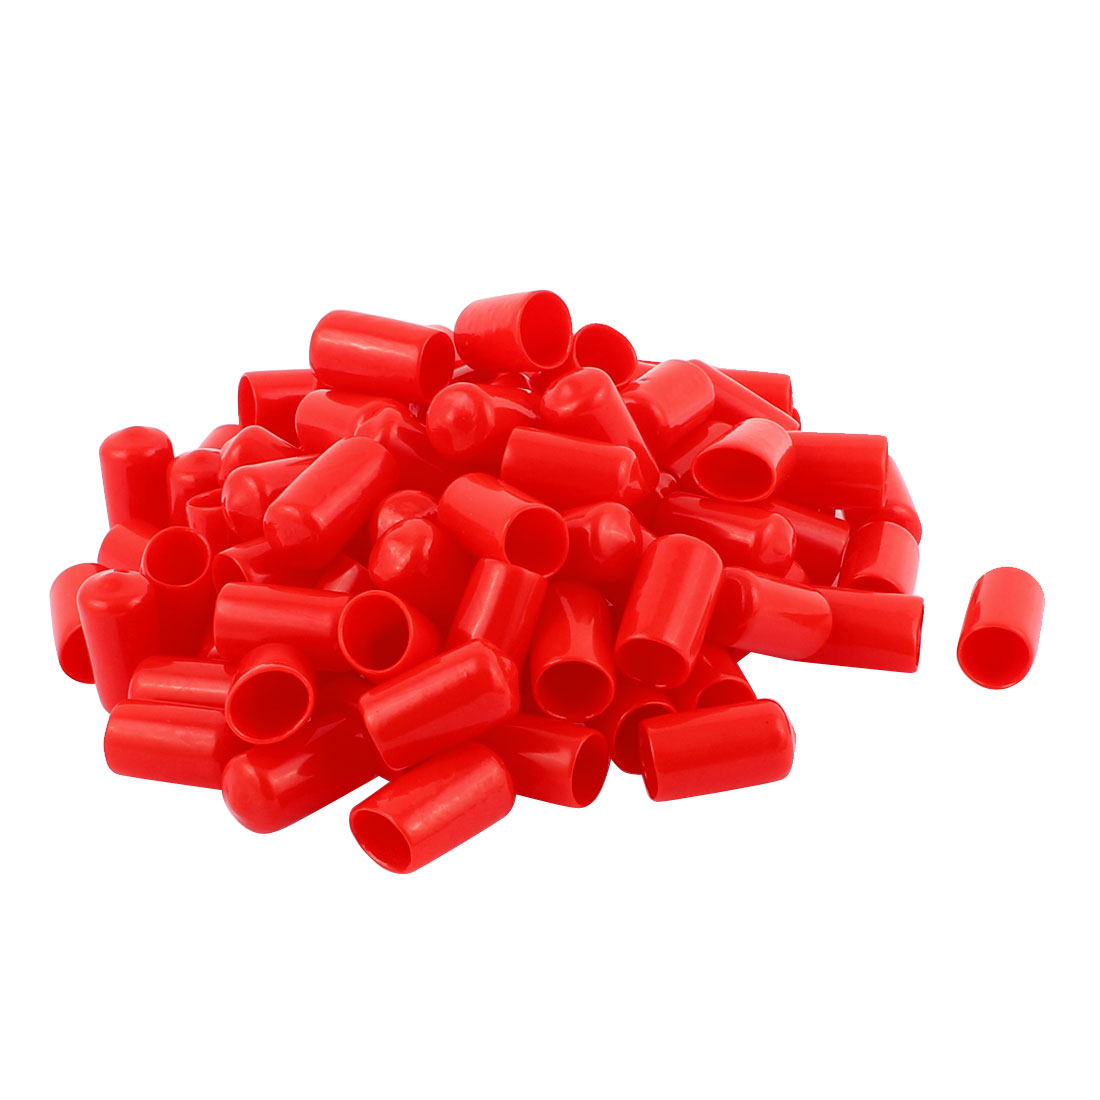 100pcs 11mm Inner Dia Vinyl End Cap Wire Cable Tube Cover Protector